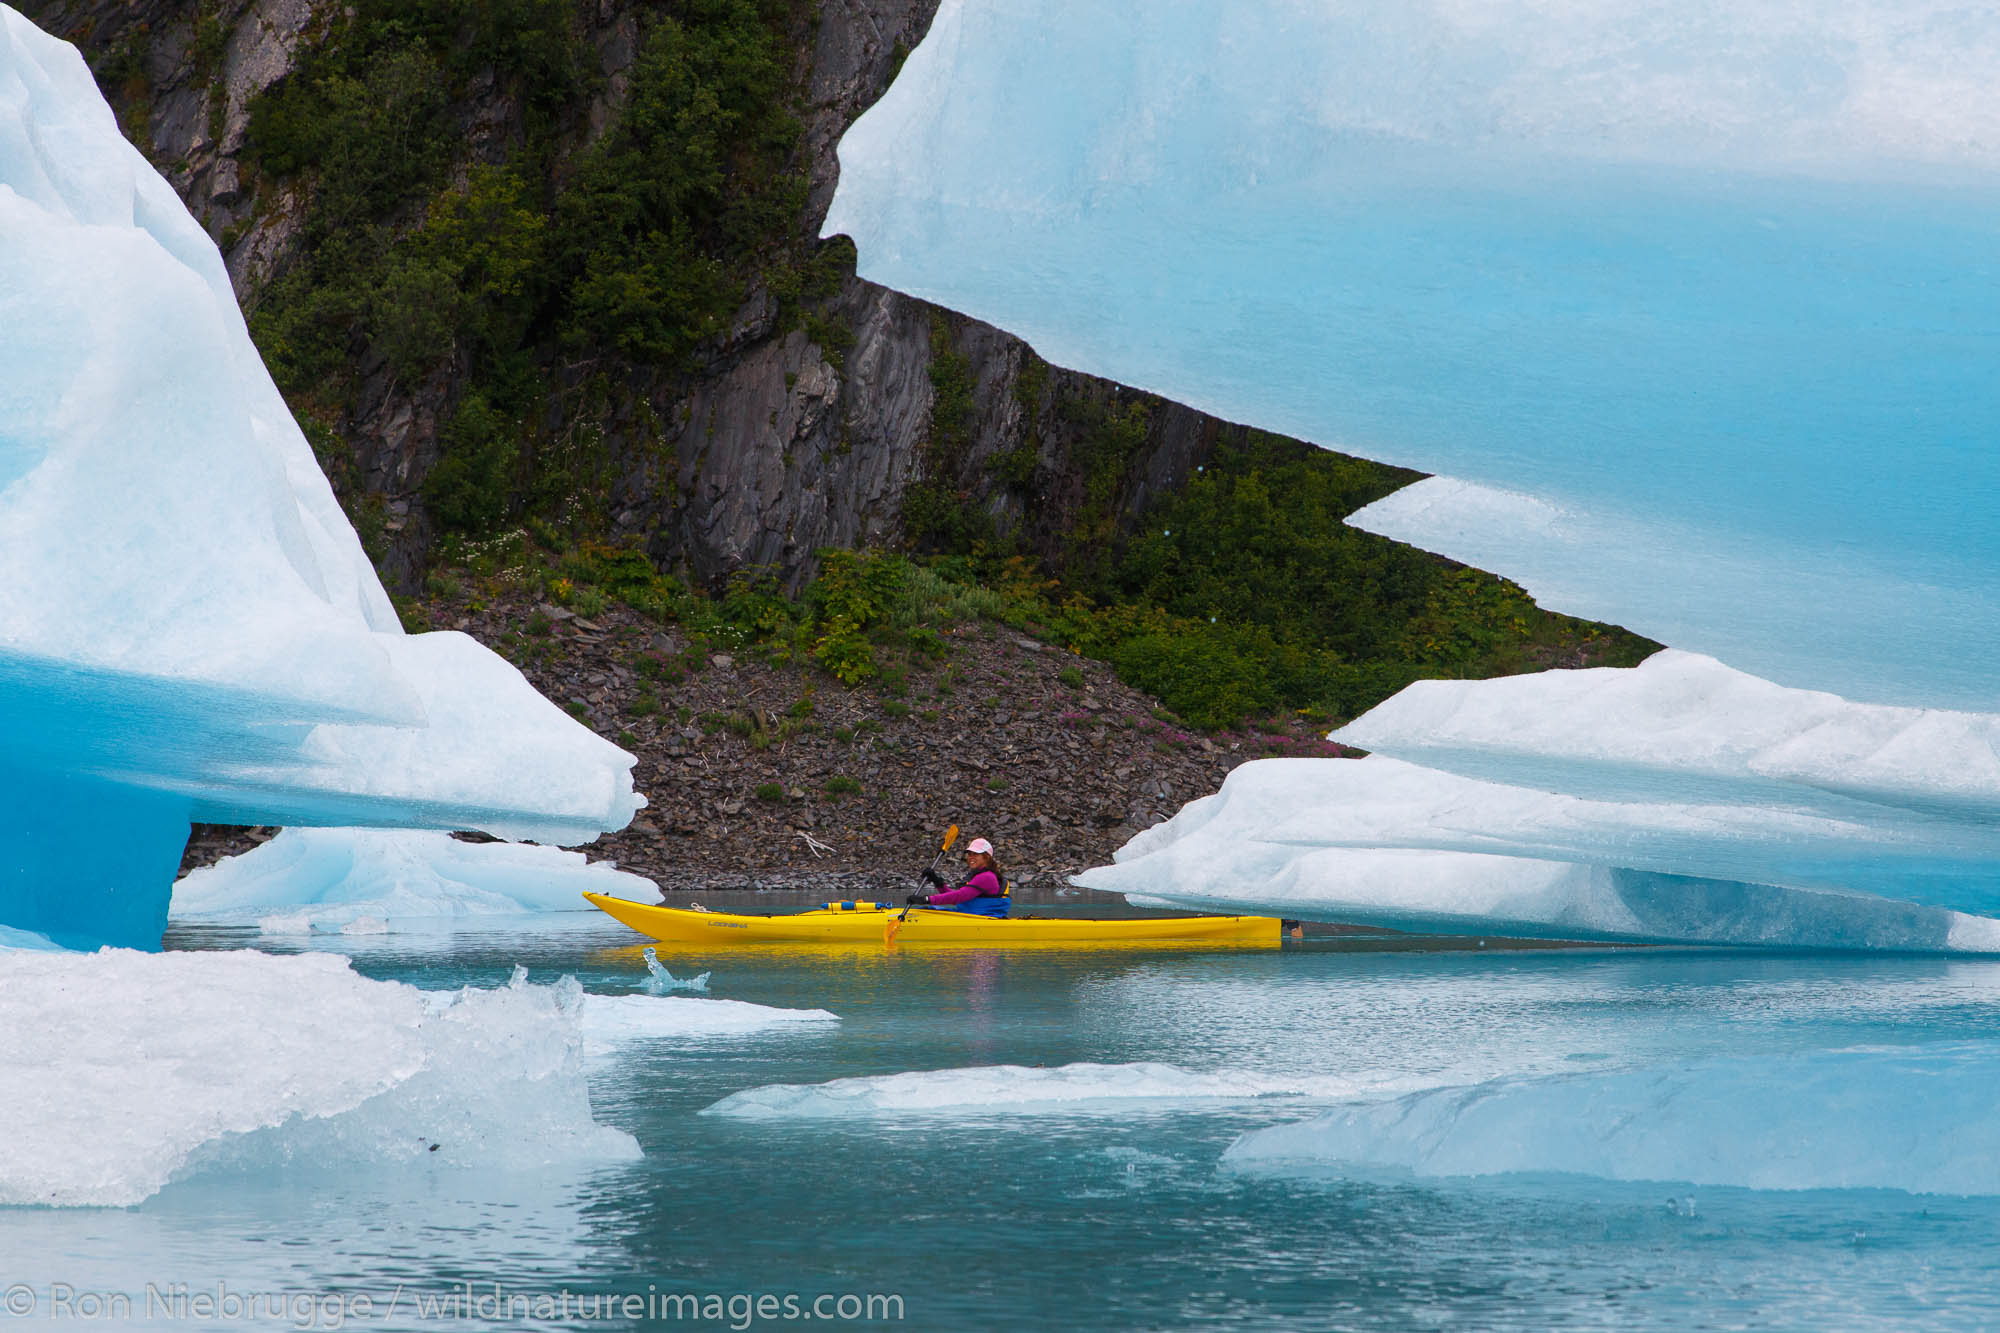 Kayaking in Bear Glacier Lagoon, Kenai Fjords National Park, near Seward, Alaska.  (model released)